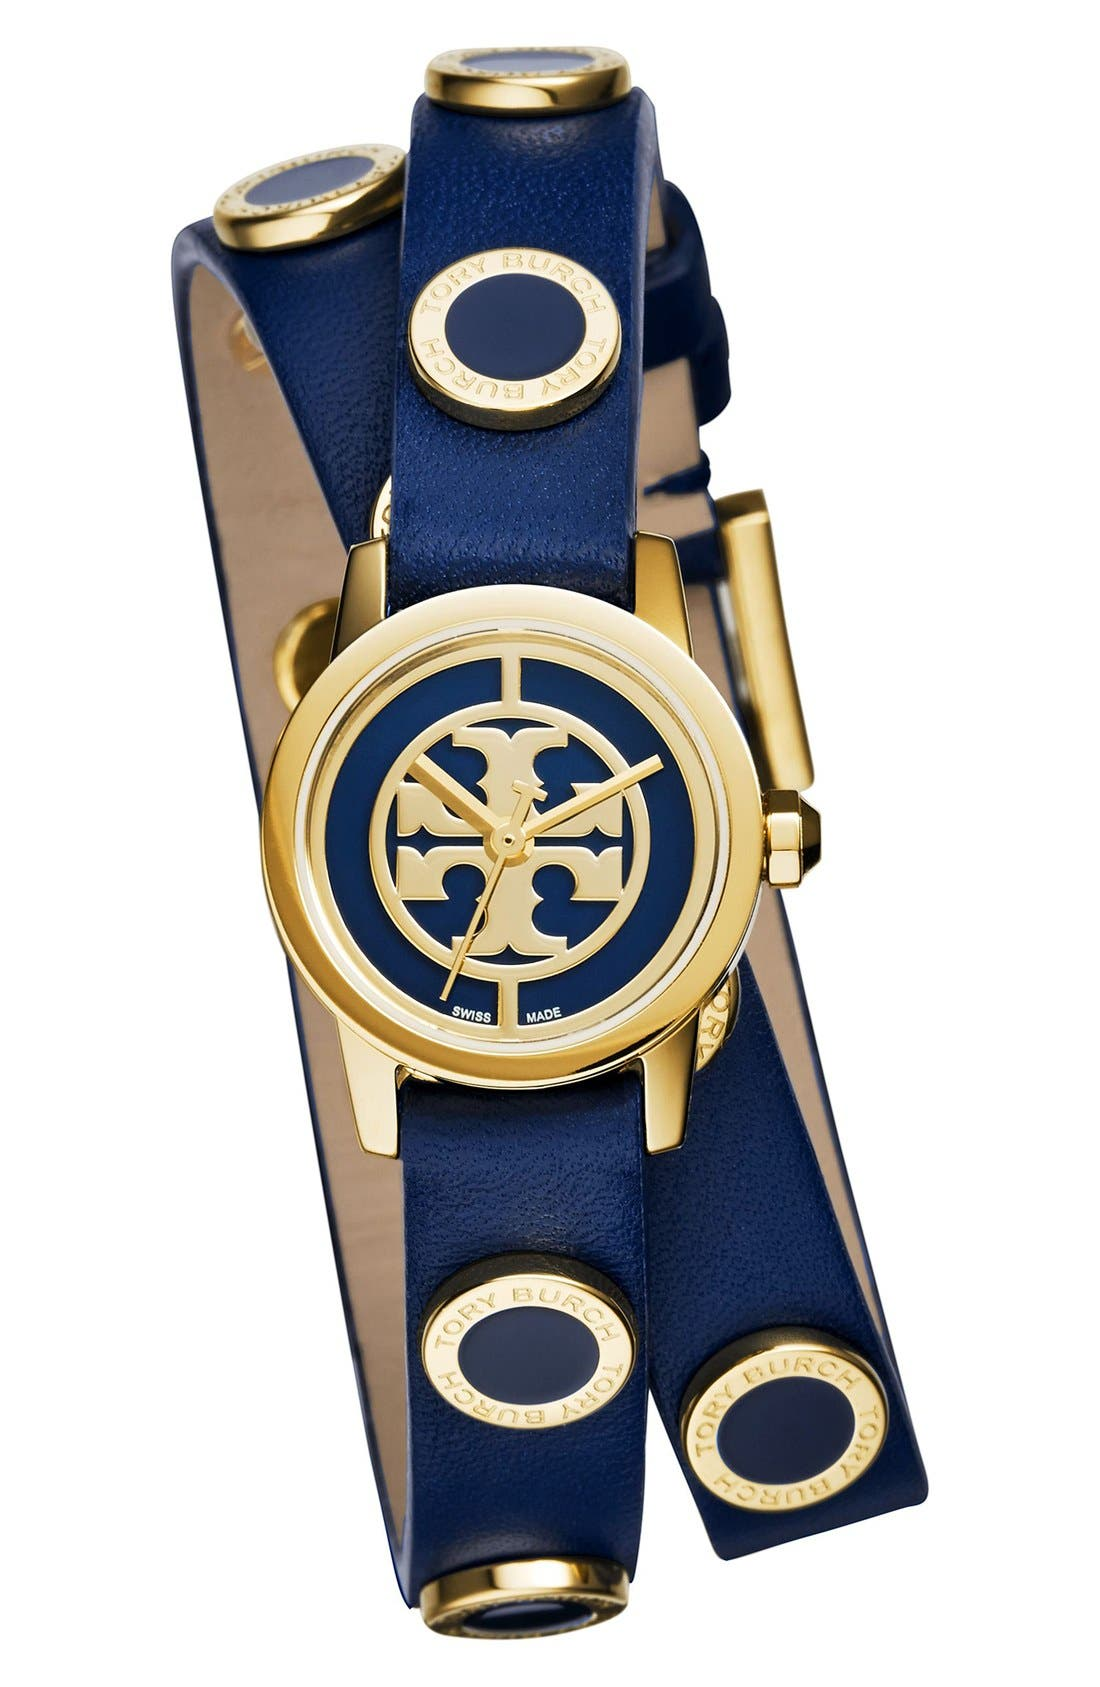 Main Image - Tory Burch 'Reva Mini' Logo Dial Double Wrap Leather Strap Watch, 21mm